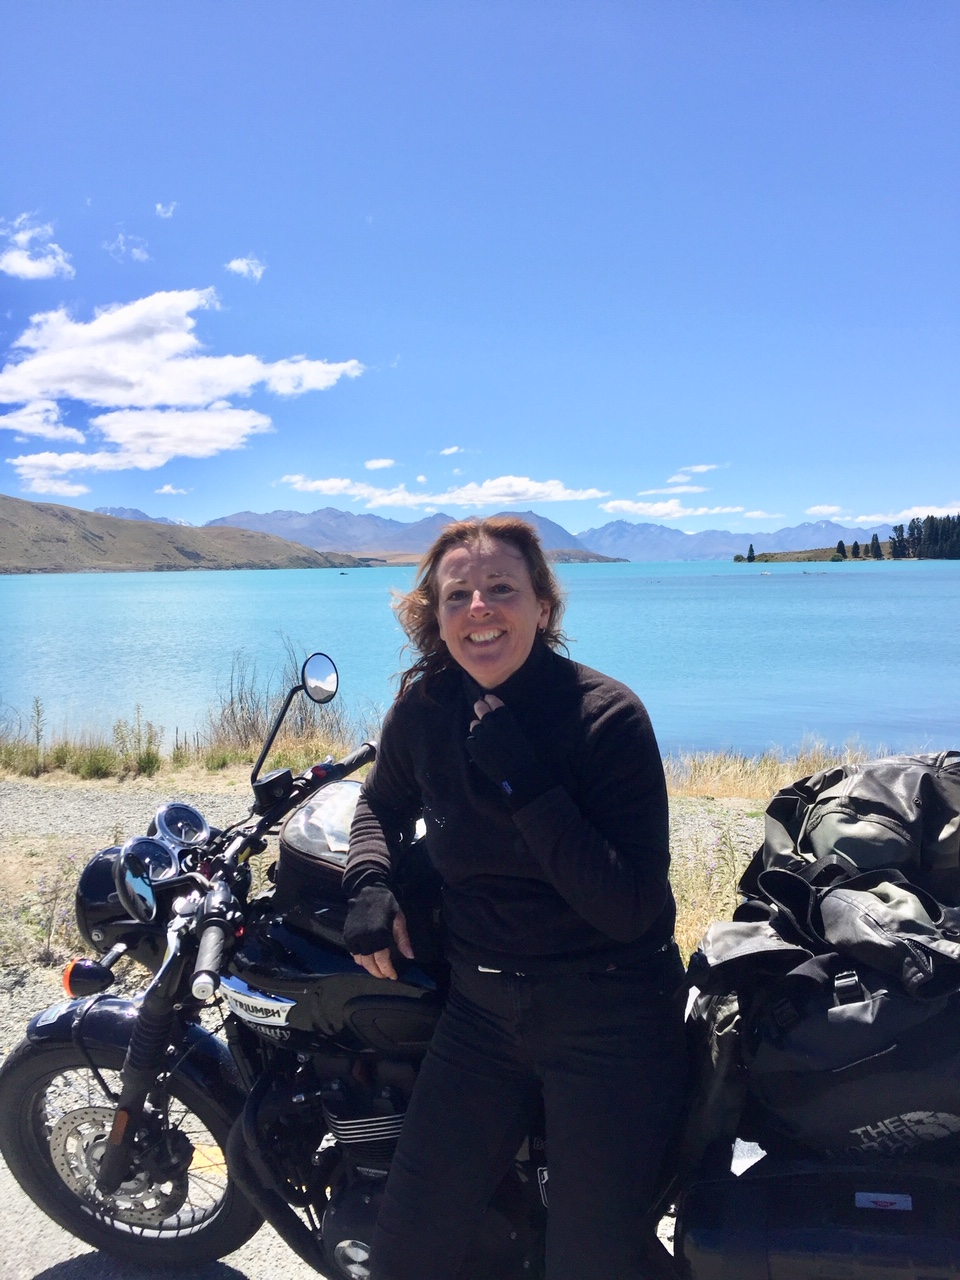 Zoe-Cano-New-Zealand-Adventure-Rider-Radio-Motorcycle-Podcast-1.jpeg